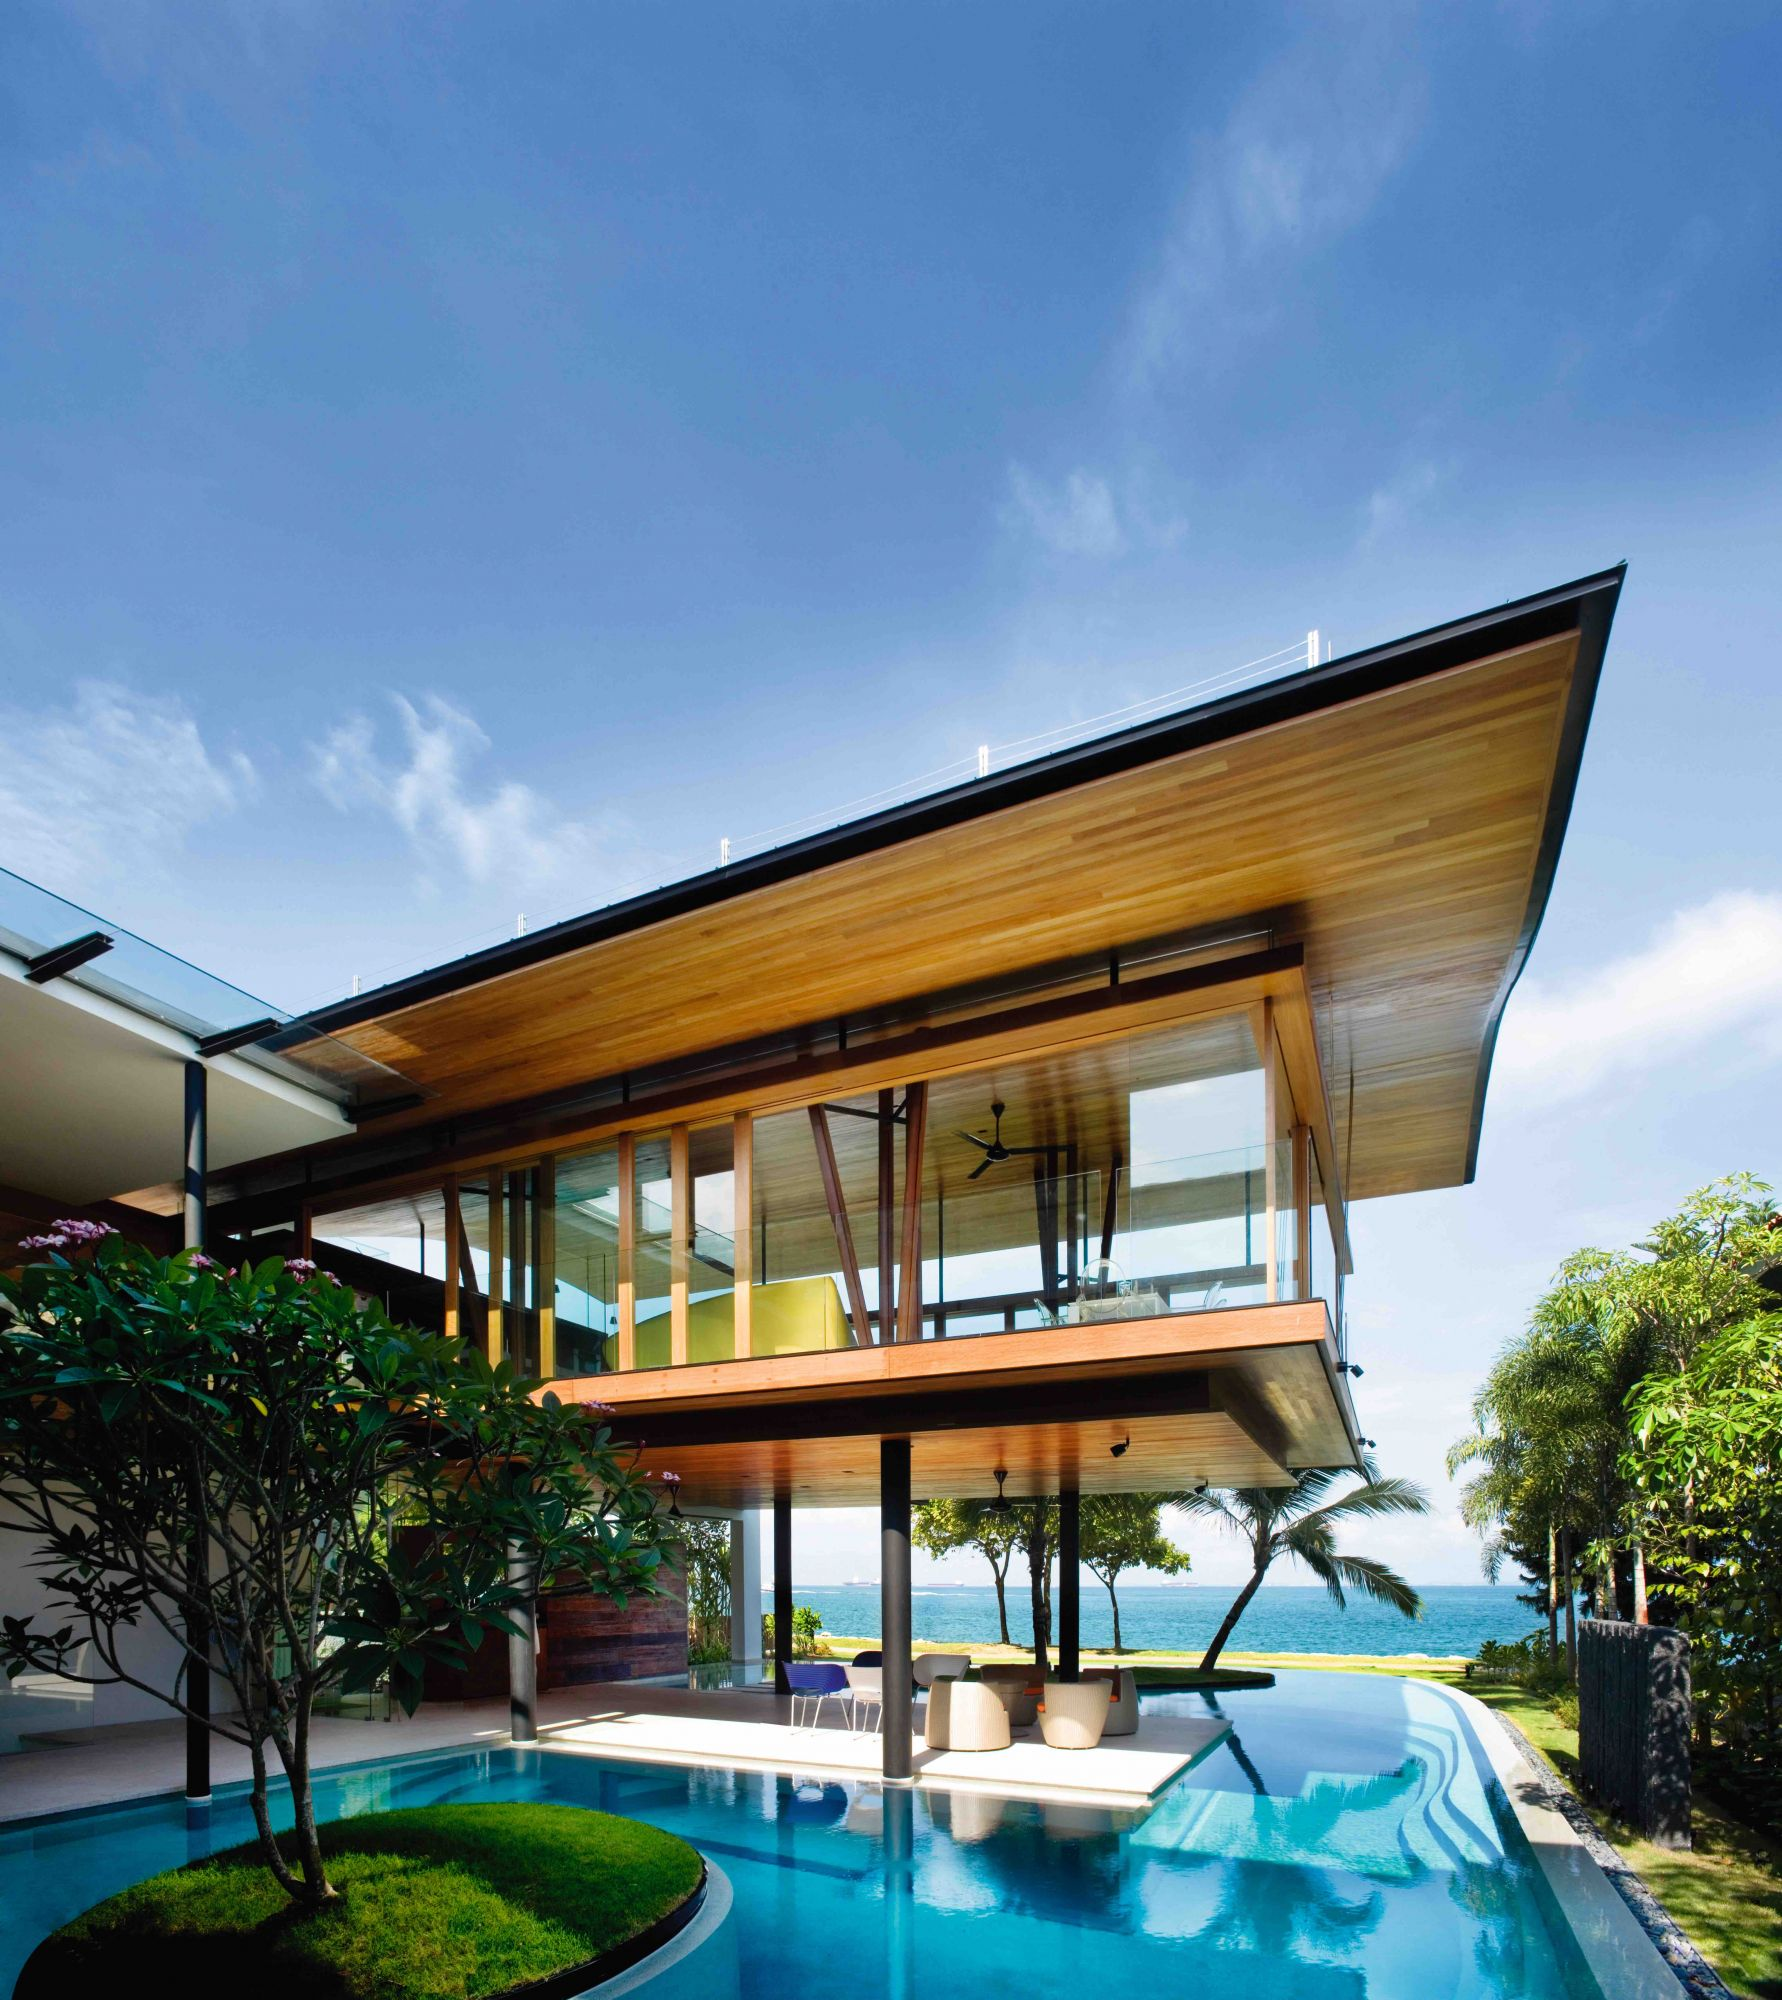 How Guz Architects Designs Houses That Are Inspired by Nature In Singapore